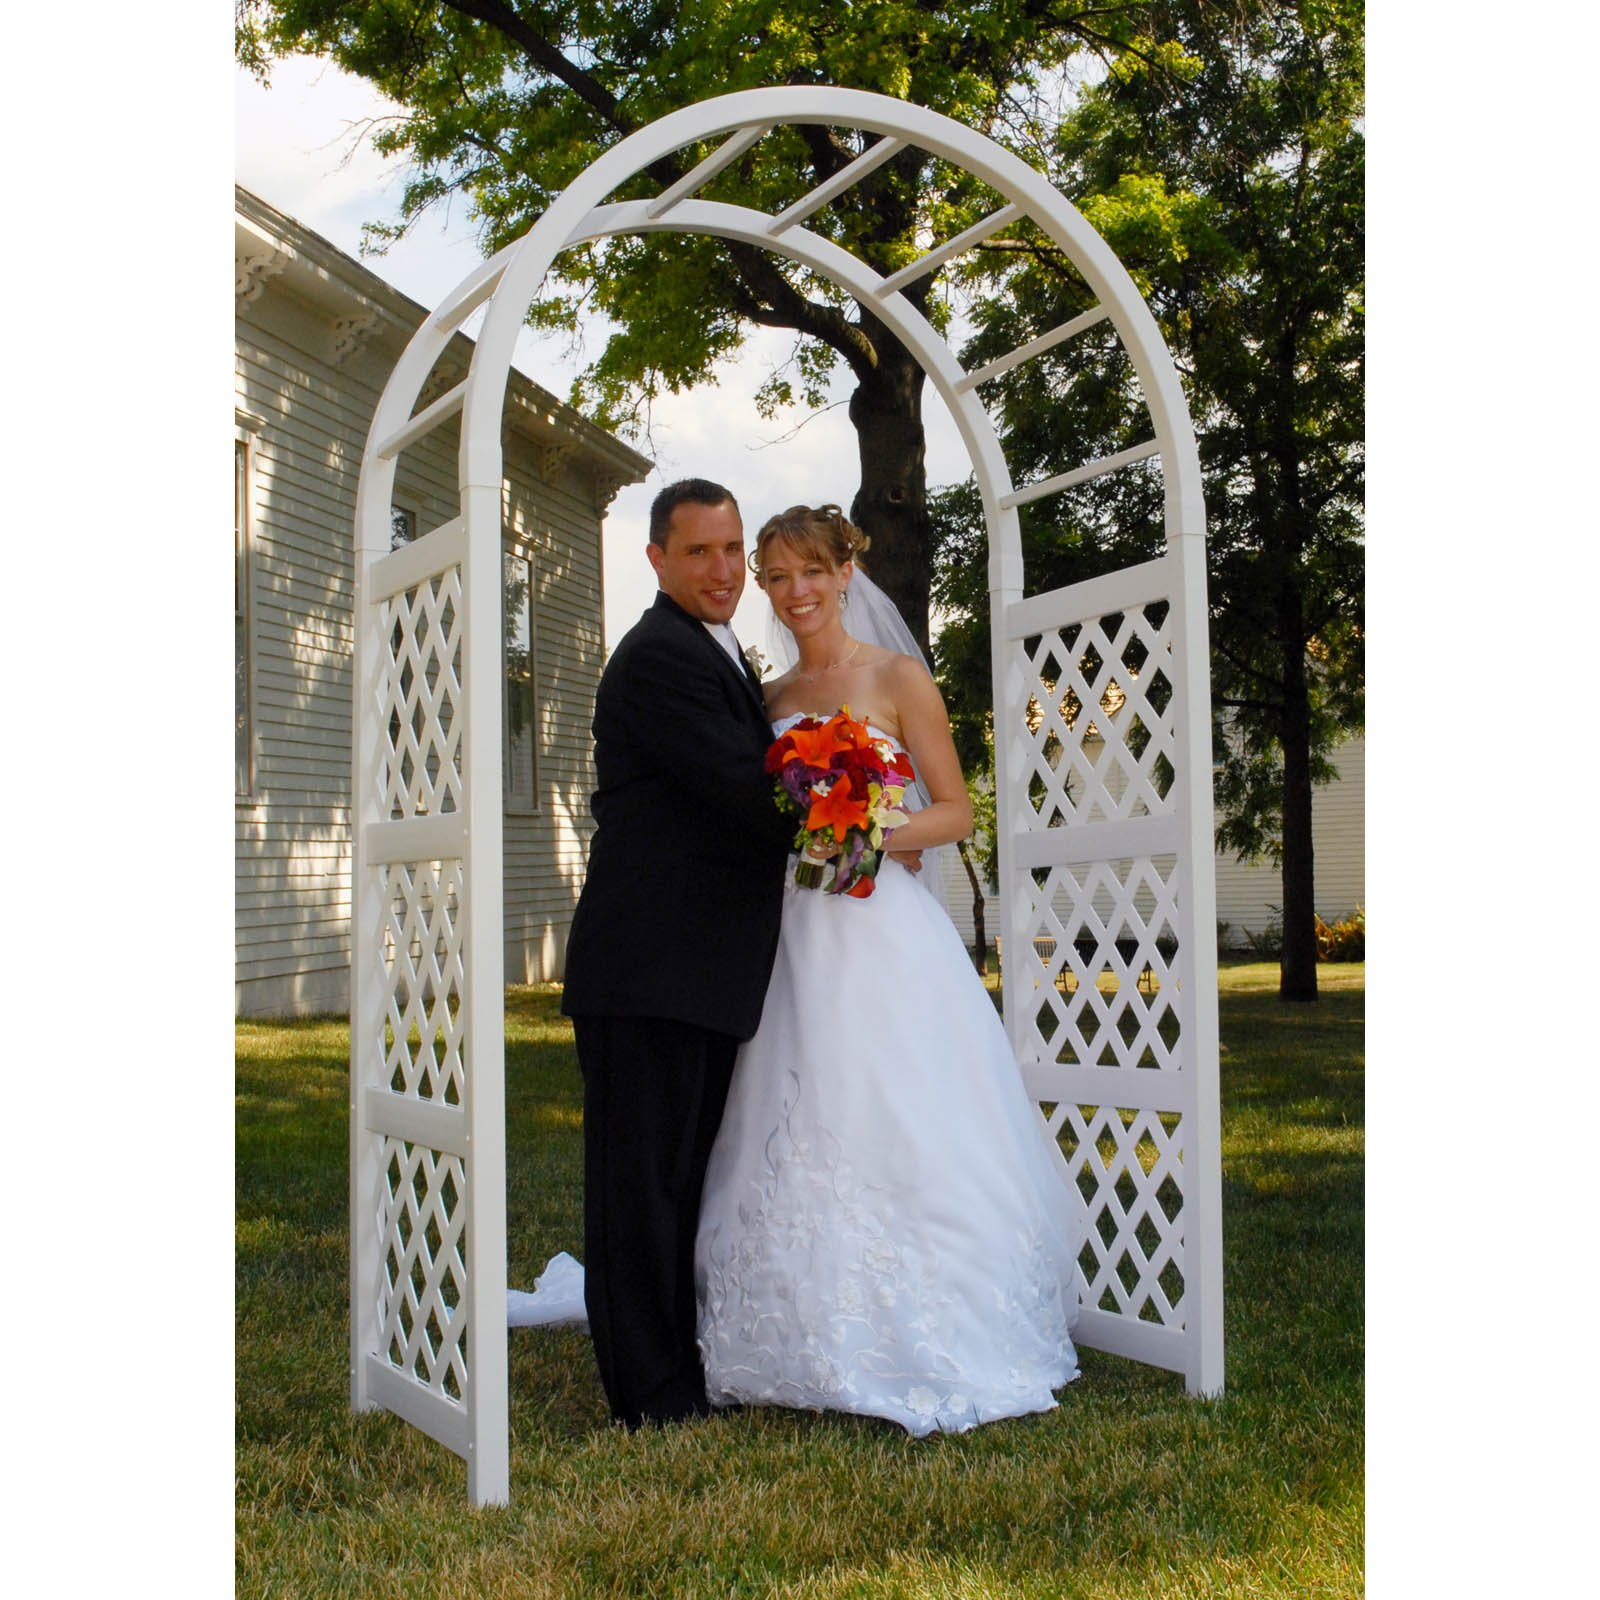 Wedding Arch Decorations Pictures: 10 Pretty Ideas For Using Wedding Arches